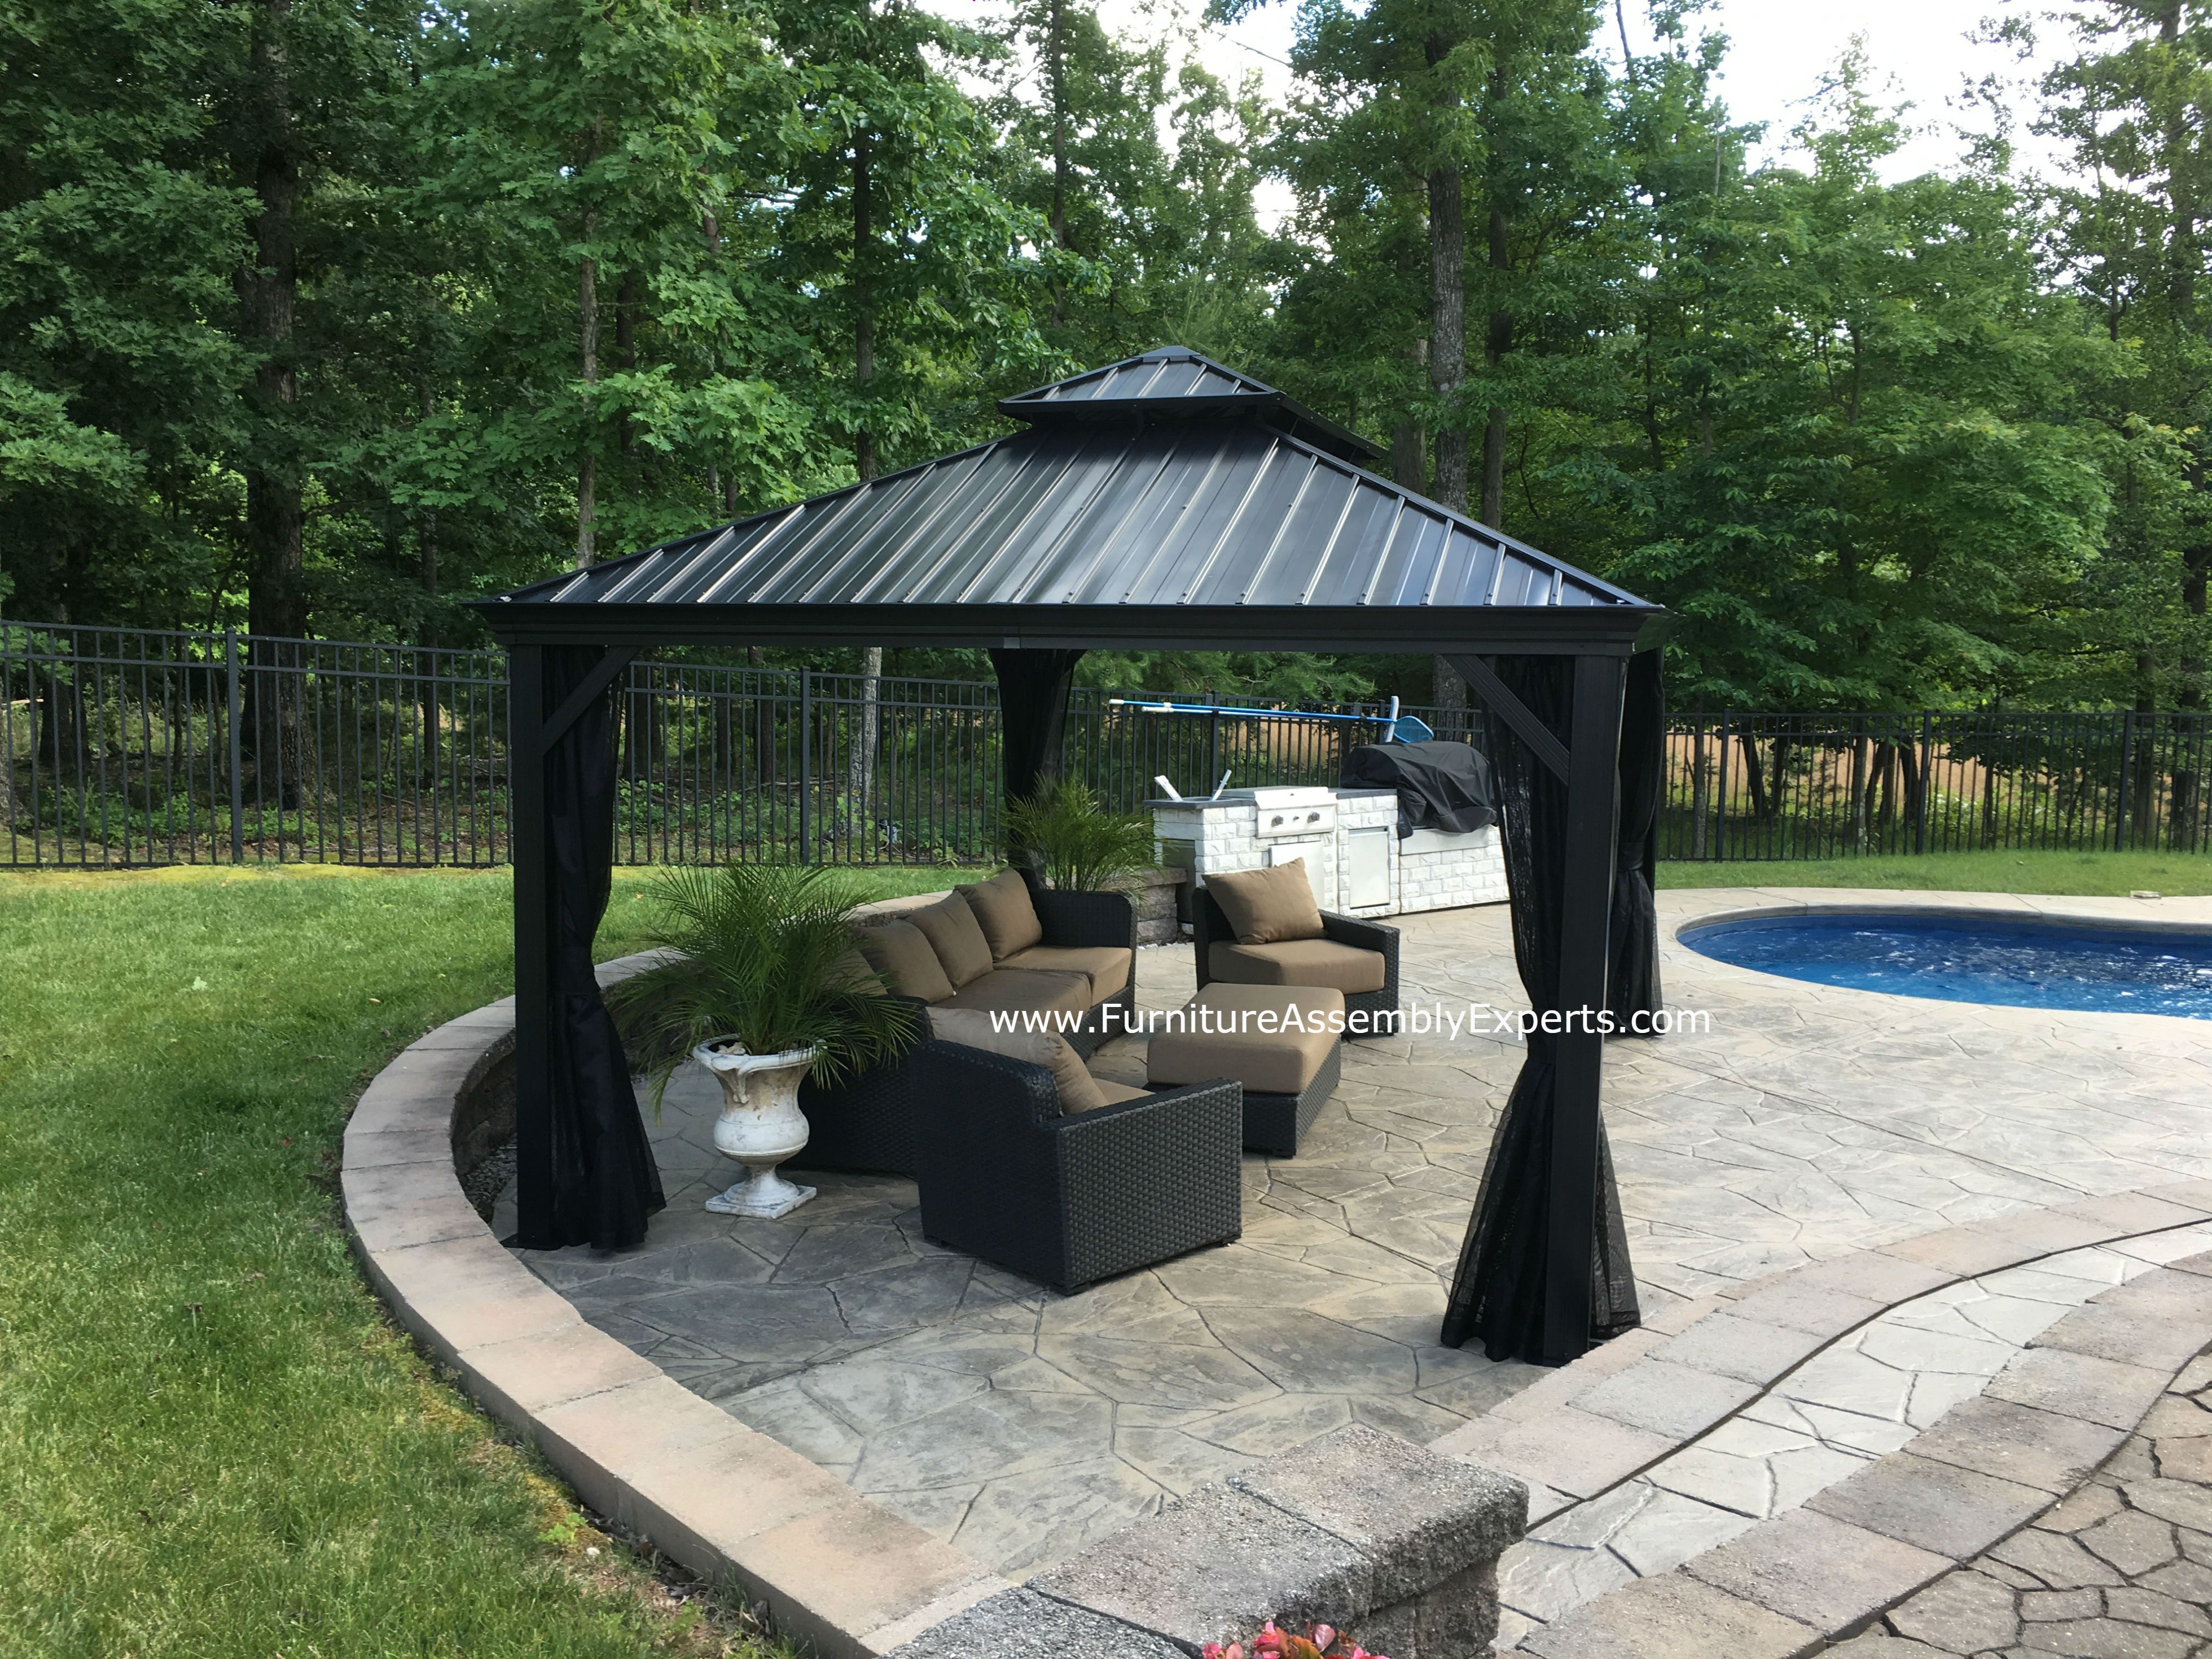 sojag gazebo from costco assembled for a customer at his home in woodbridge virginia by furniture assembly experts company